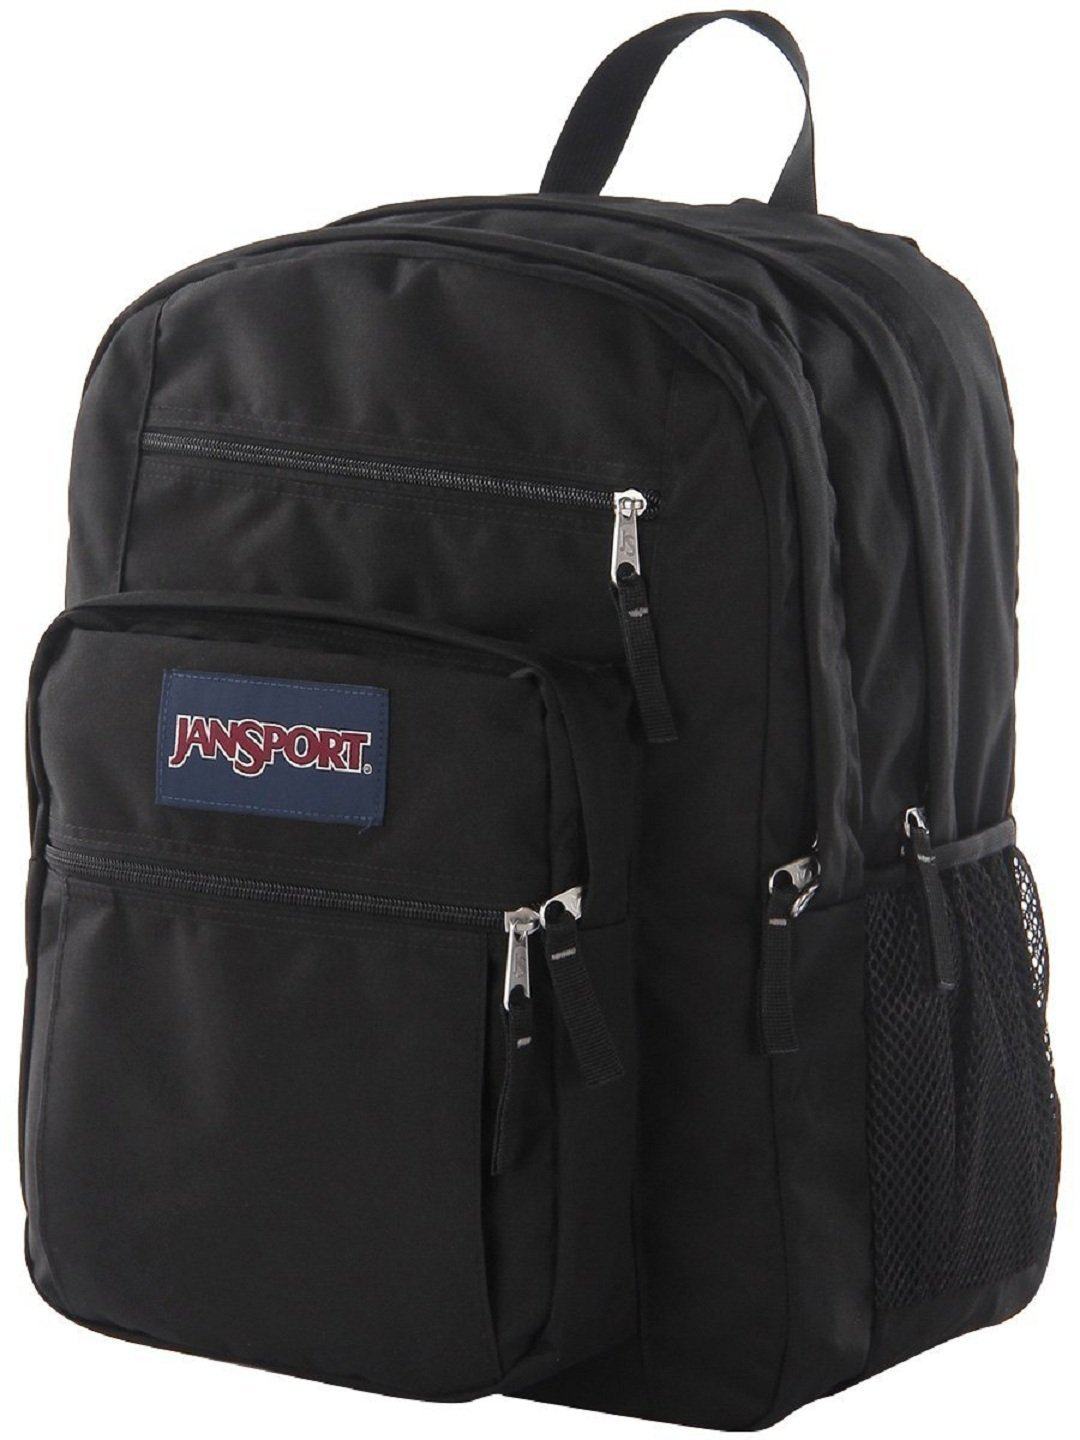 JanSport - Big Student Backpack, Black -